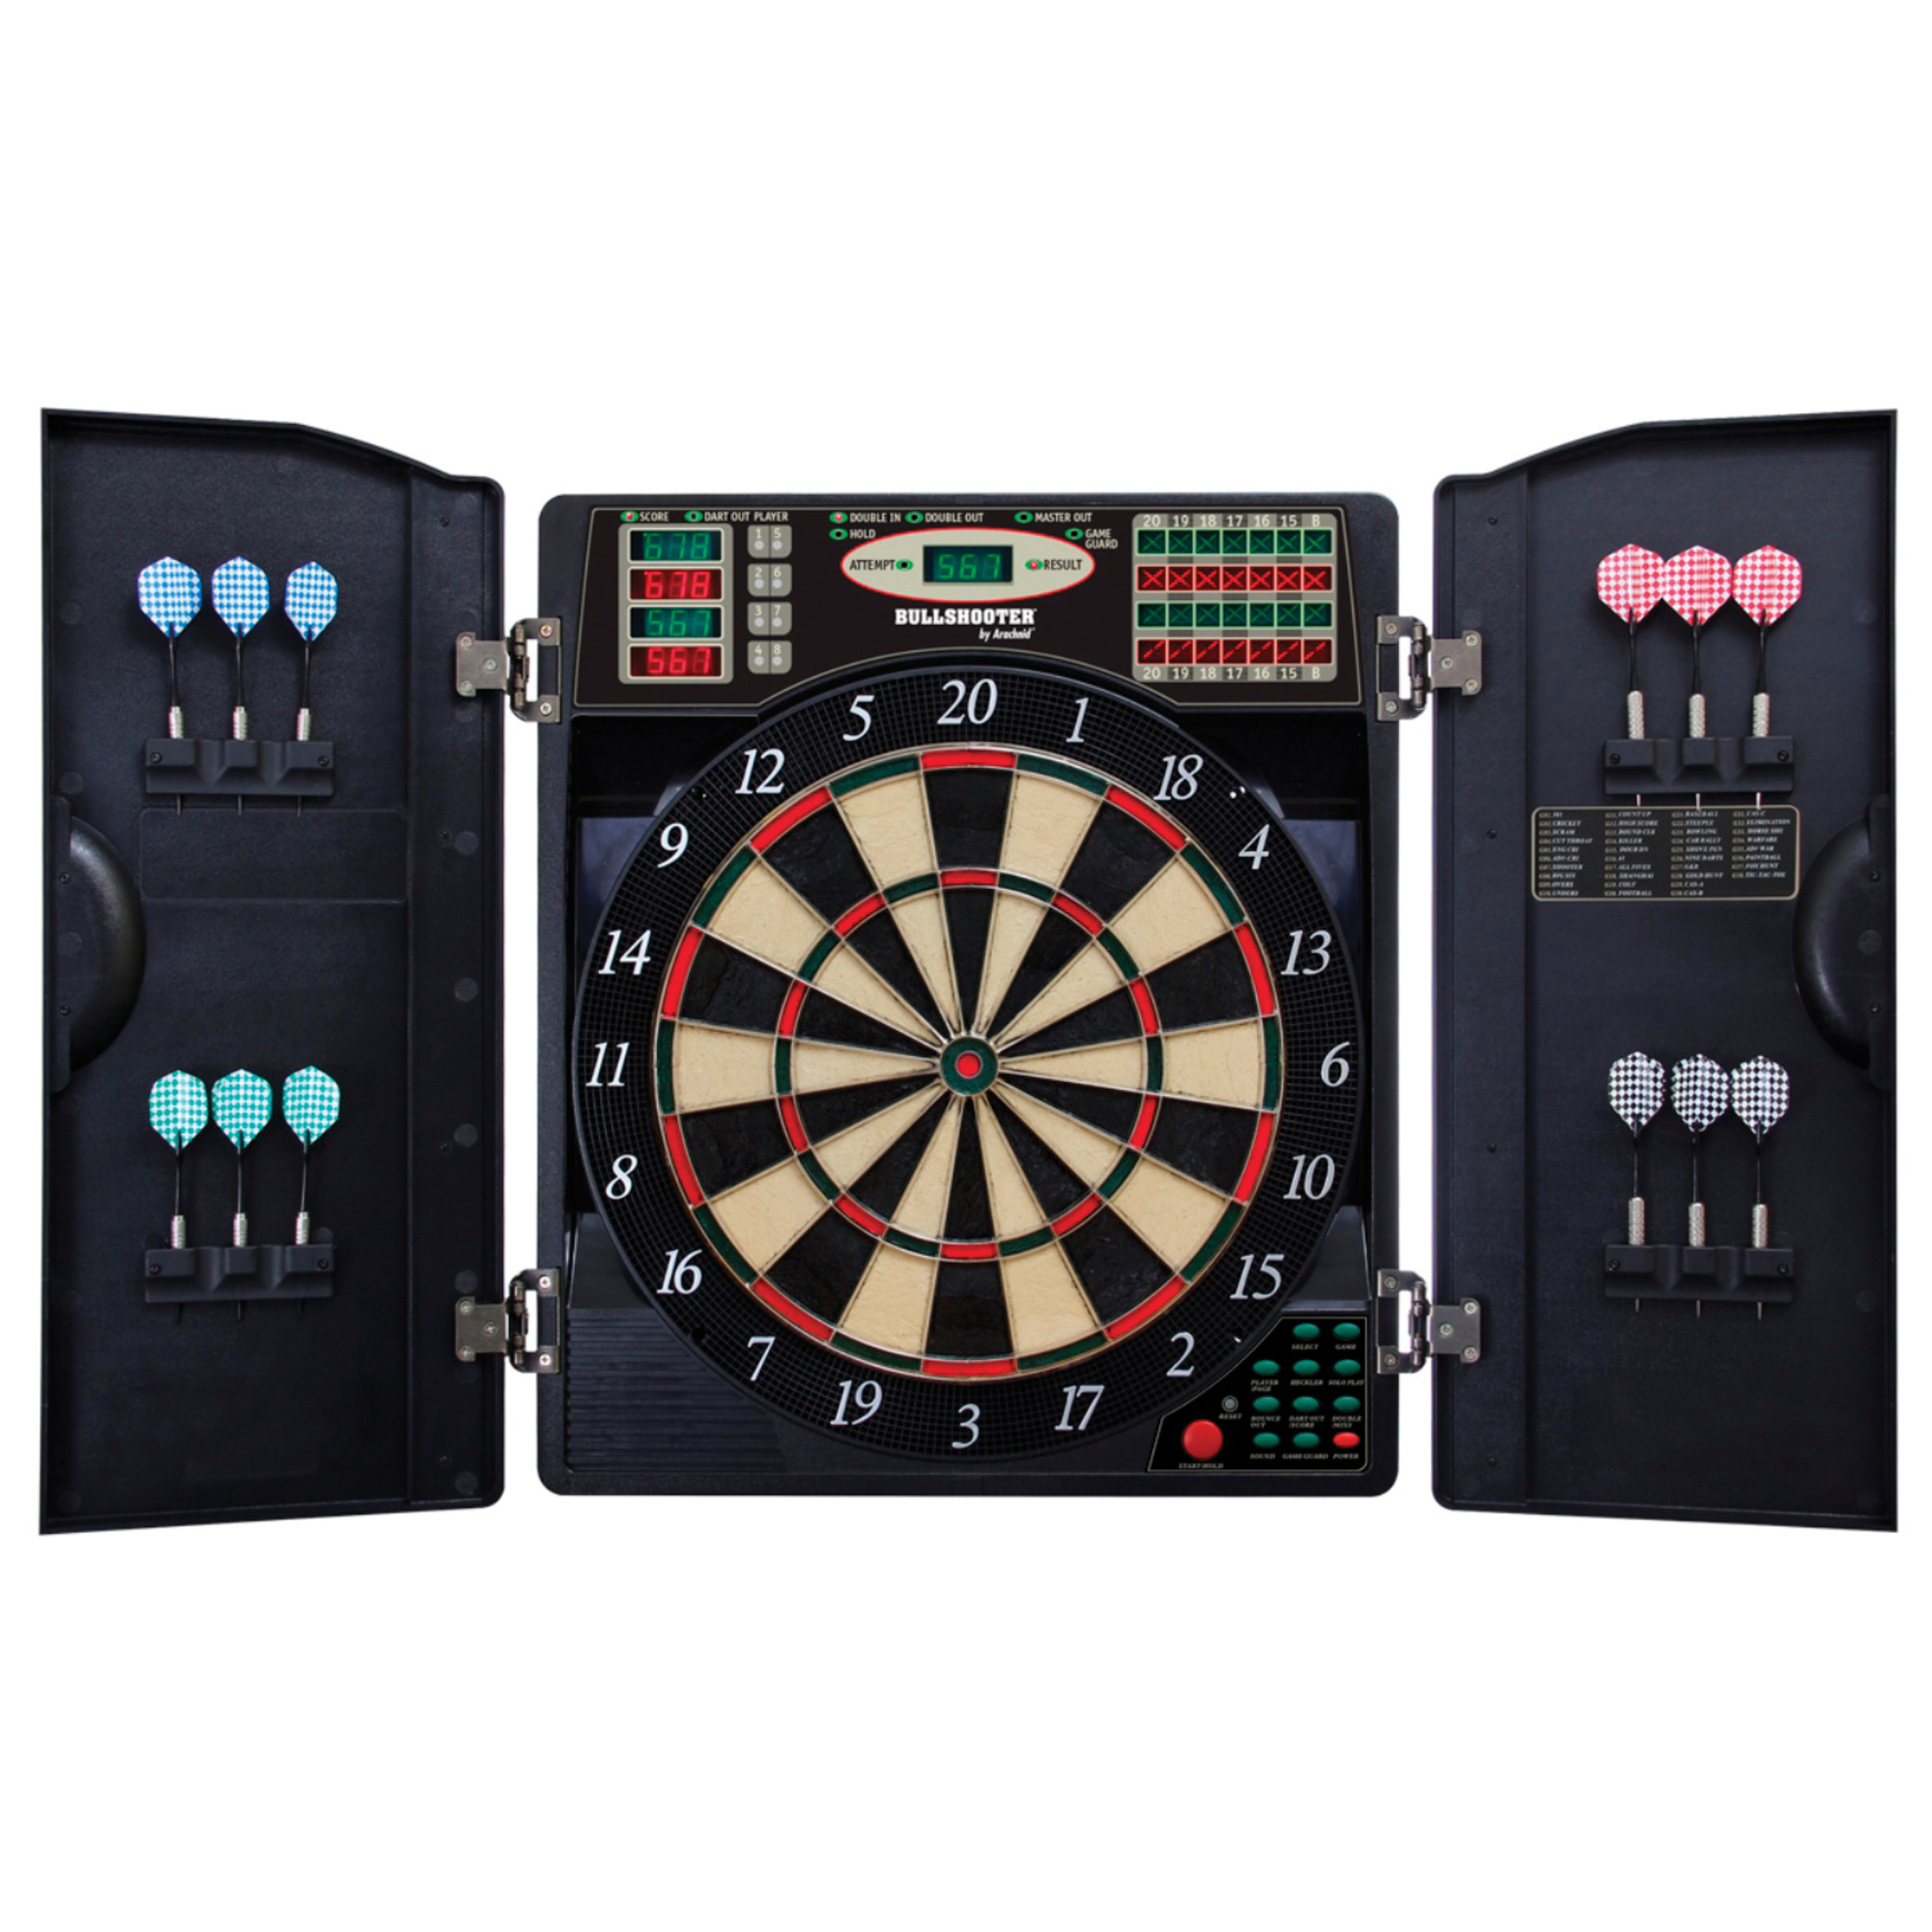 Bullshooter E-Bristle 1000 LED Electronic Dartboard Cabinet Set